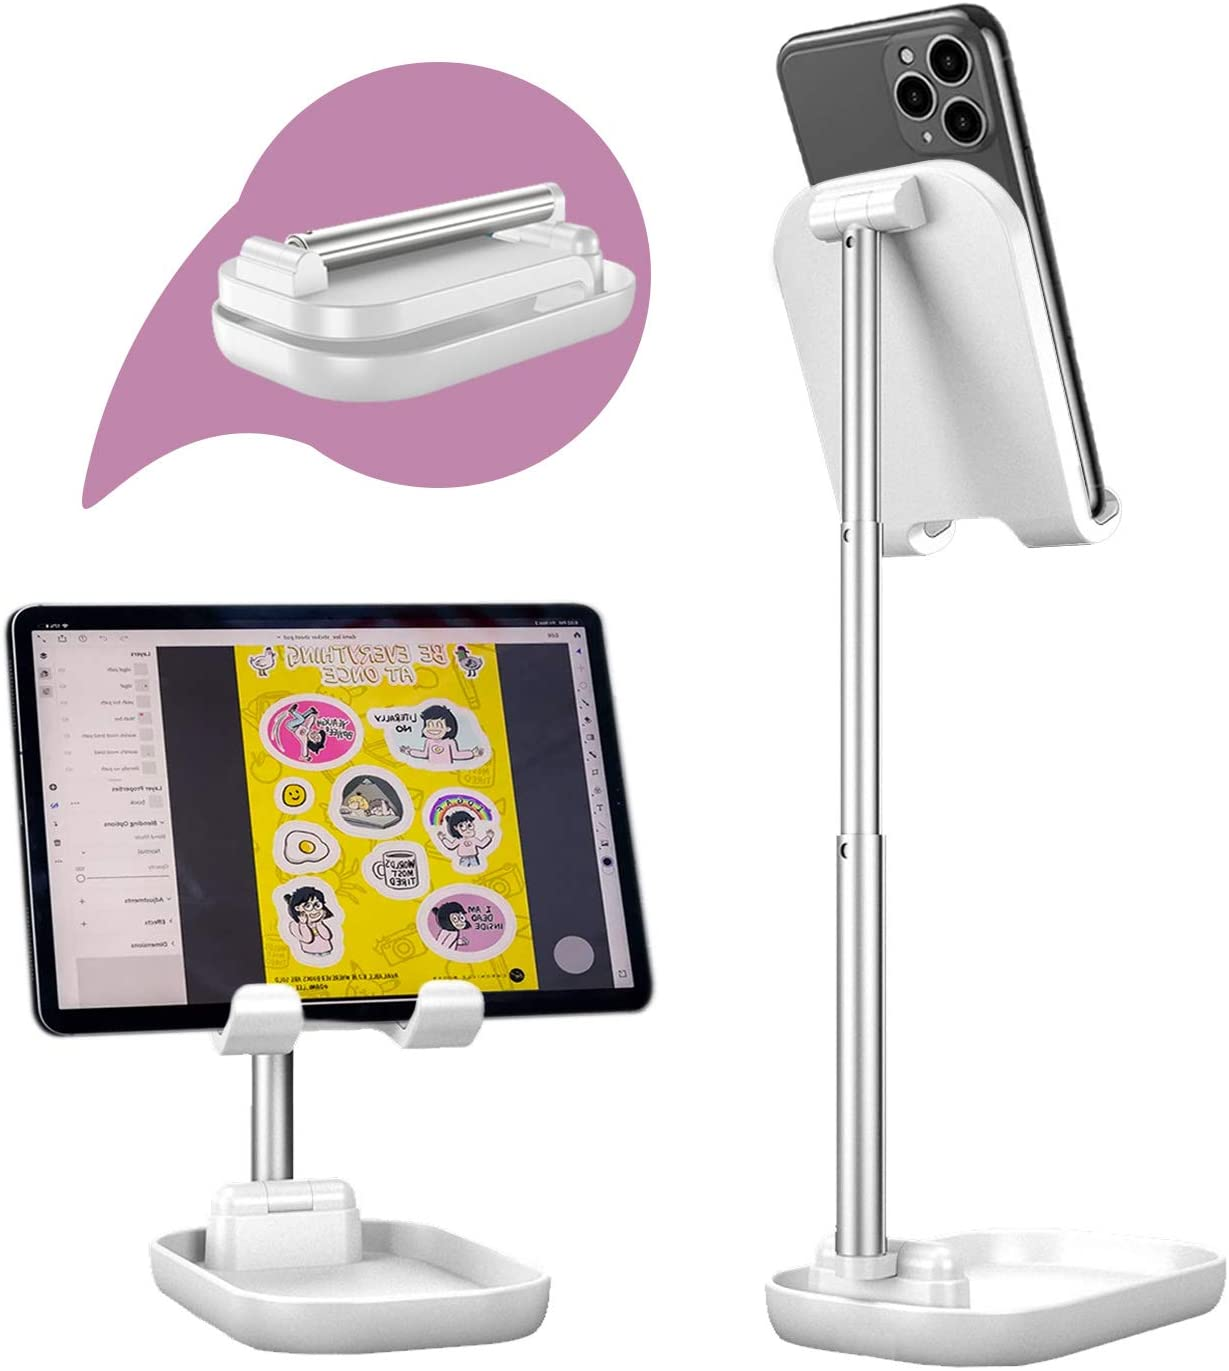 VKTEN Cell Phone Stand, Fully Foldable Phone Stand, Angle Height Adjustable Phone Holder Desktop Cradle Dock Compatible with All Phones, iPad Mini, Nintendo Switch, Kindle, Tablets (4-11